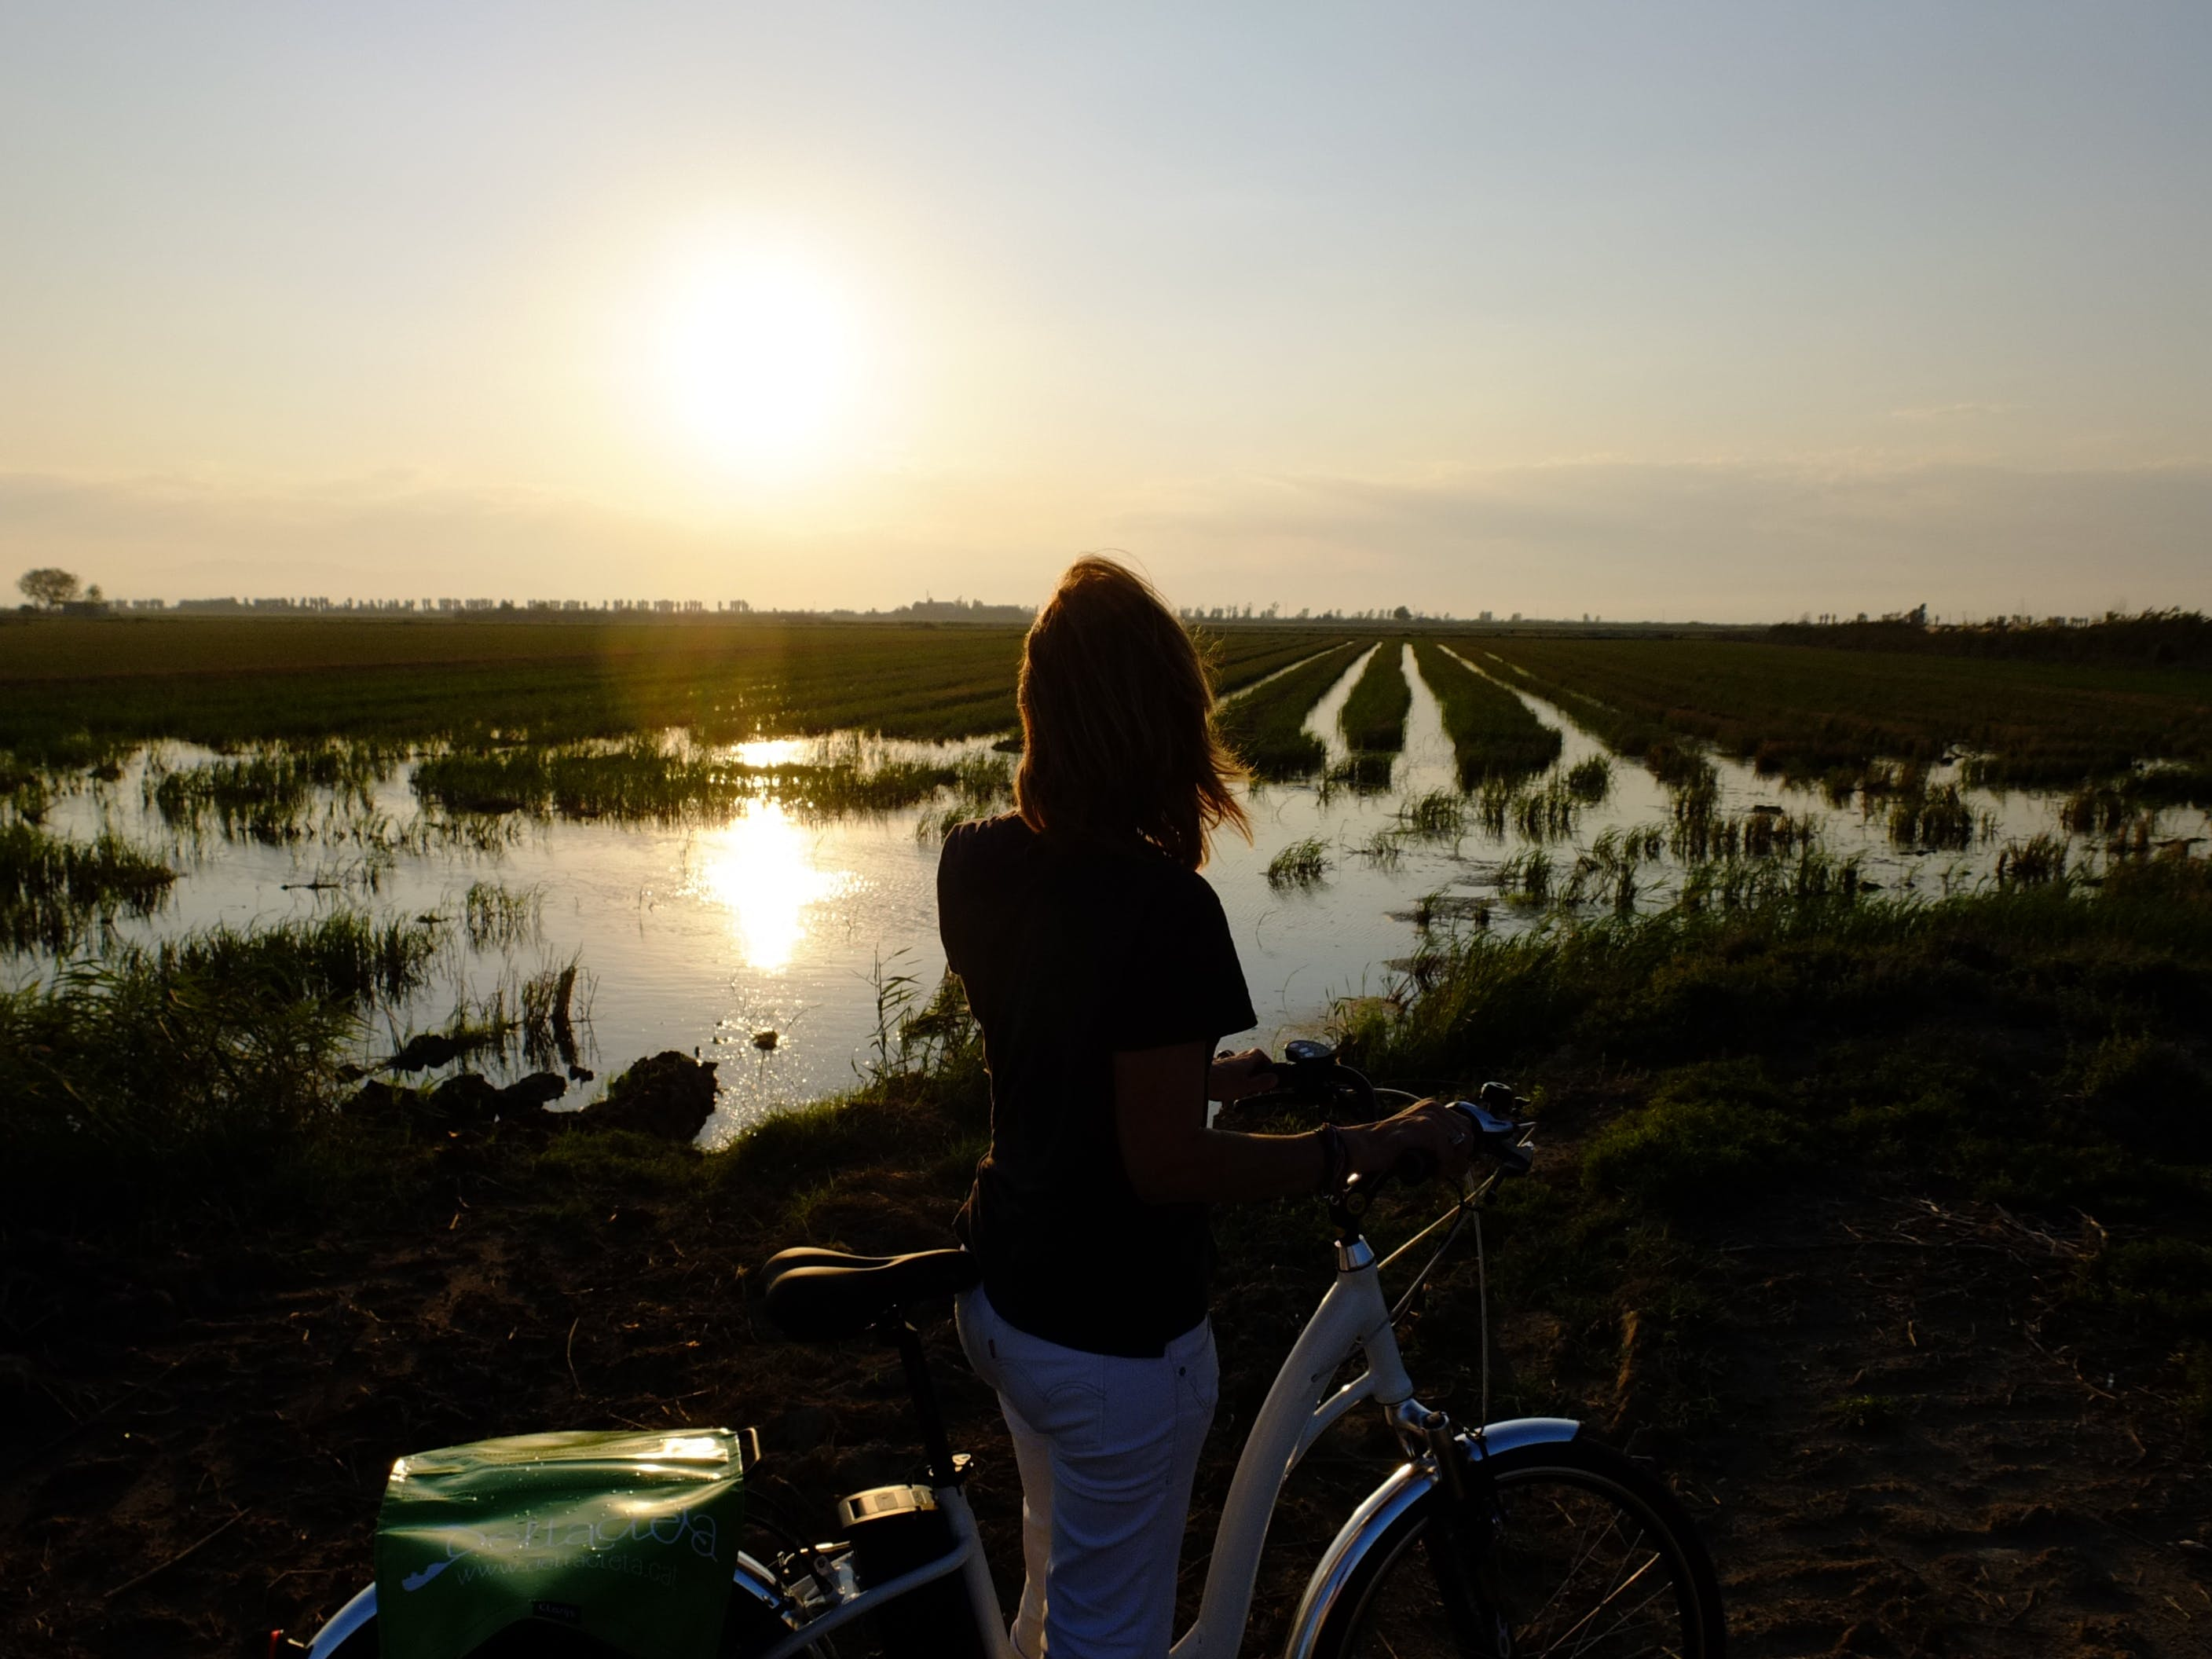 Free stock photo of nature, bicycle, rice field, Delta del Ebre